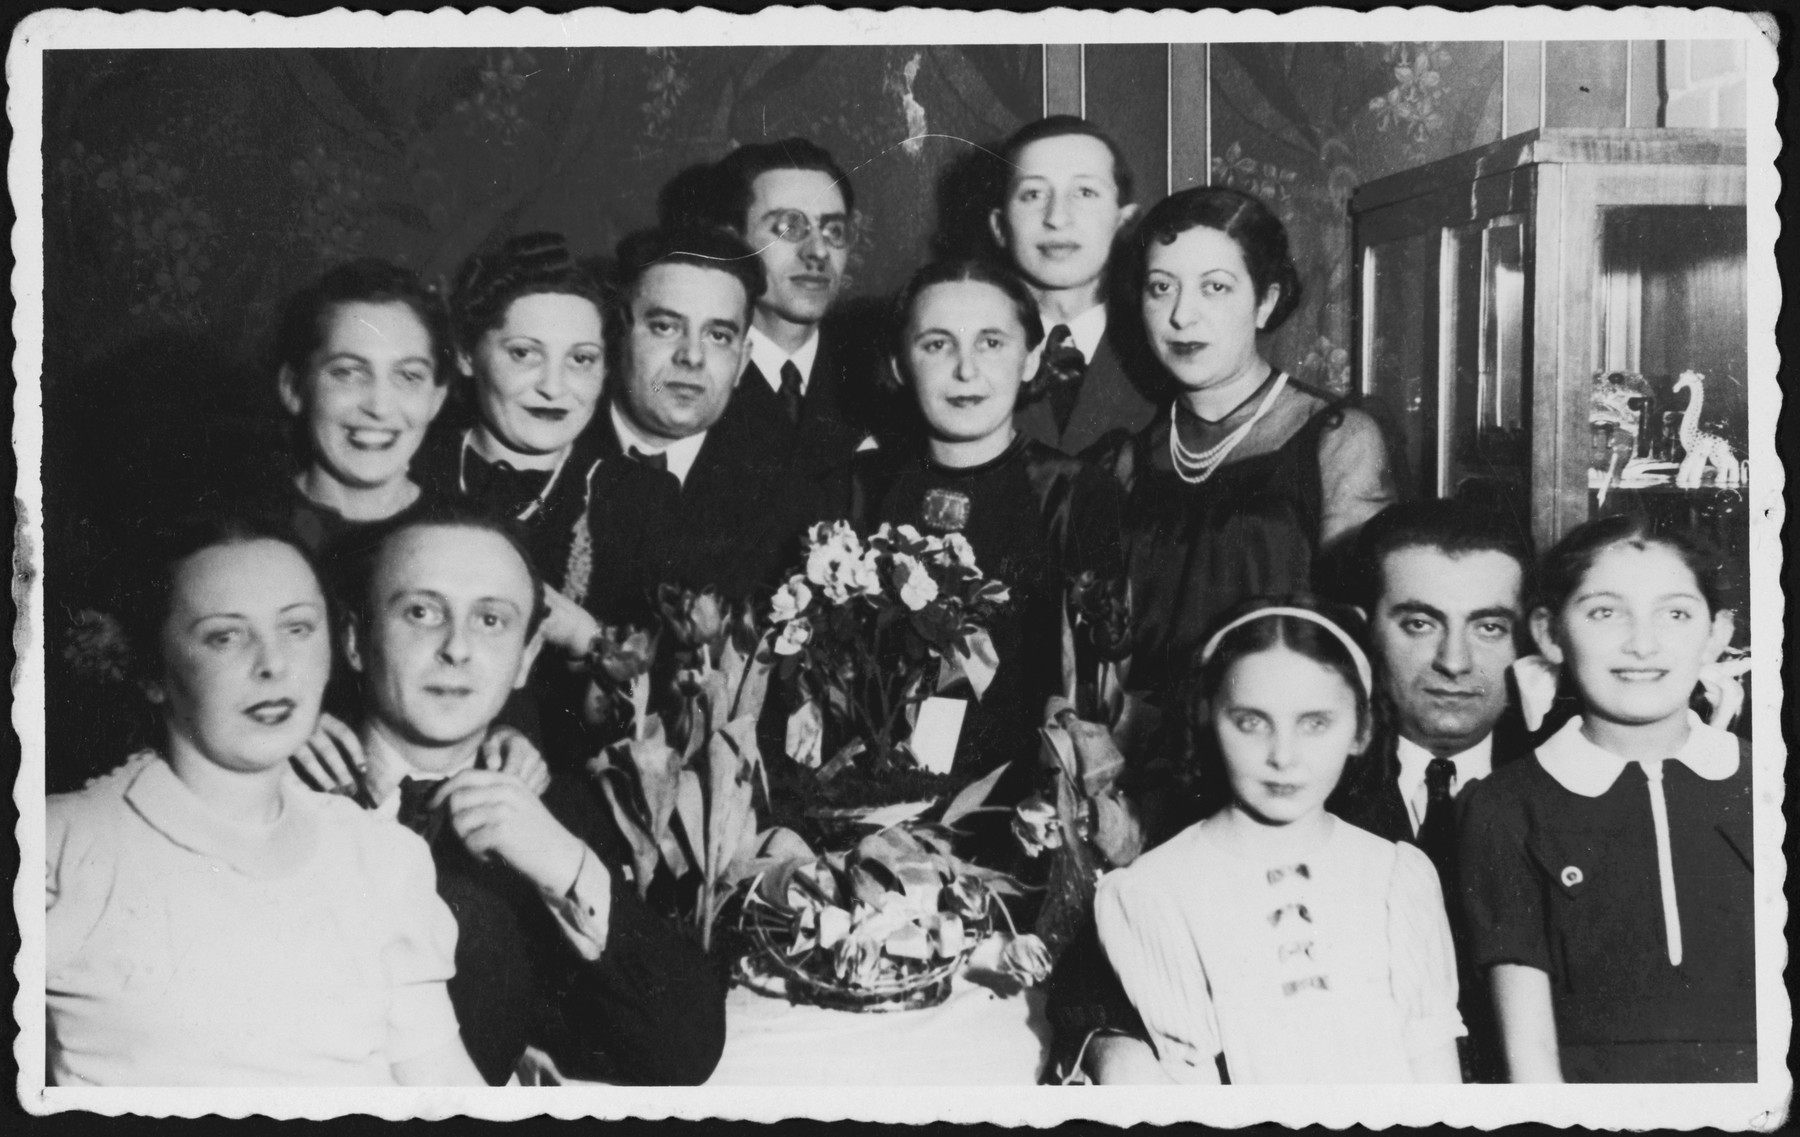 Group portrait of guests at Josef and Ada Altbeker's 10th anniversary party.